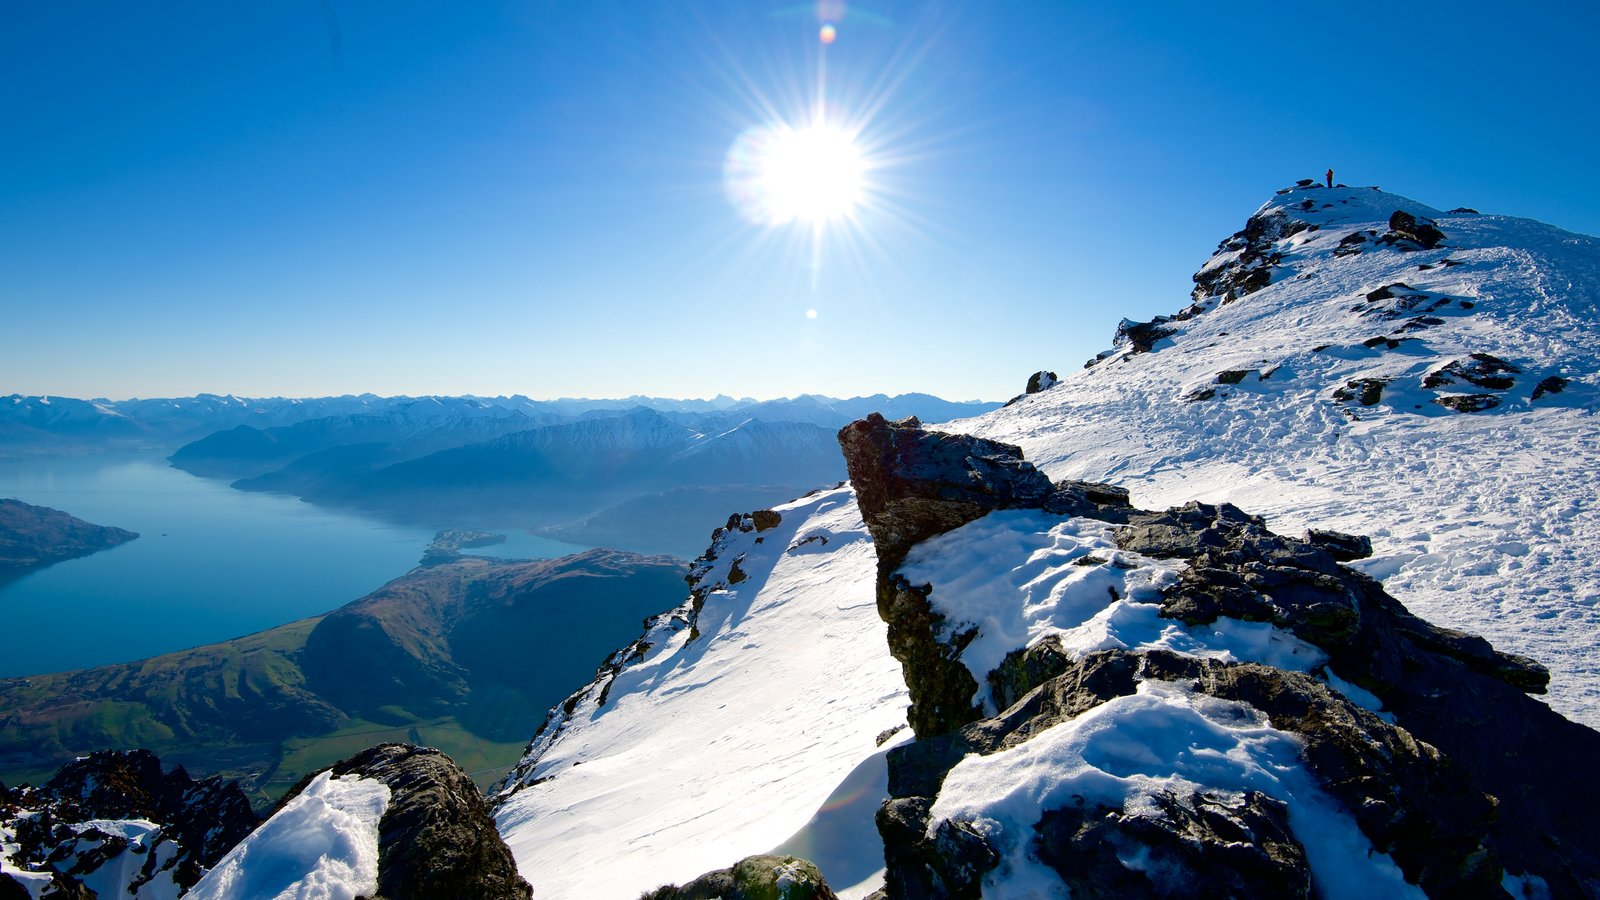 The Remarkables Ski Area featuring landscape views, a river or creek and snow